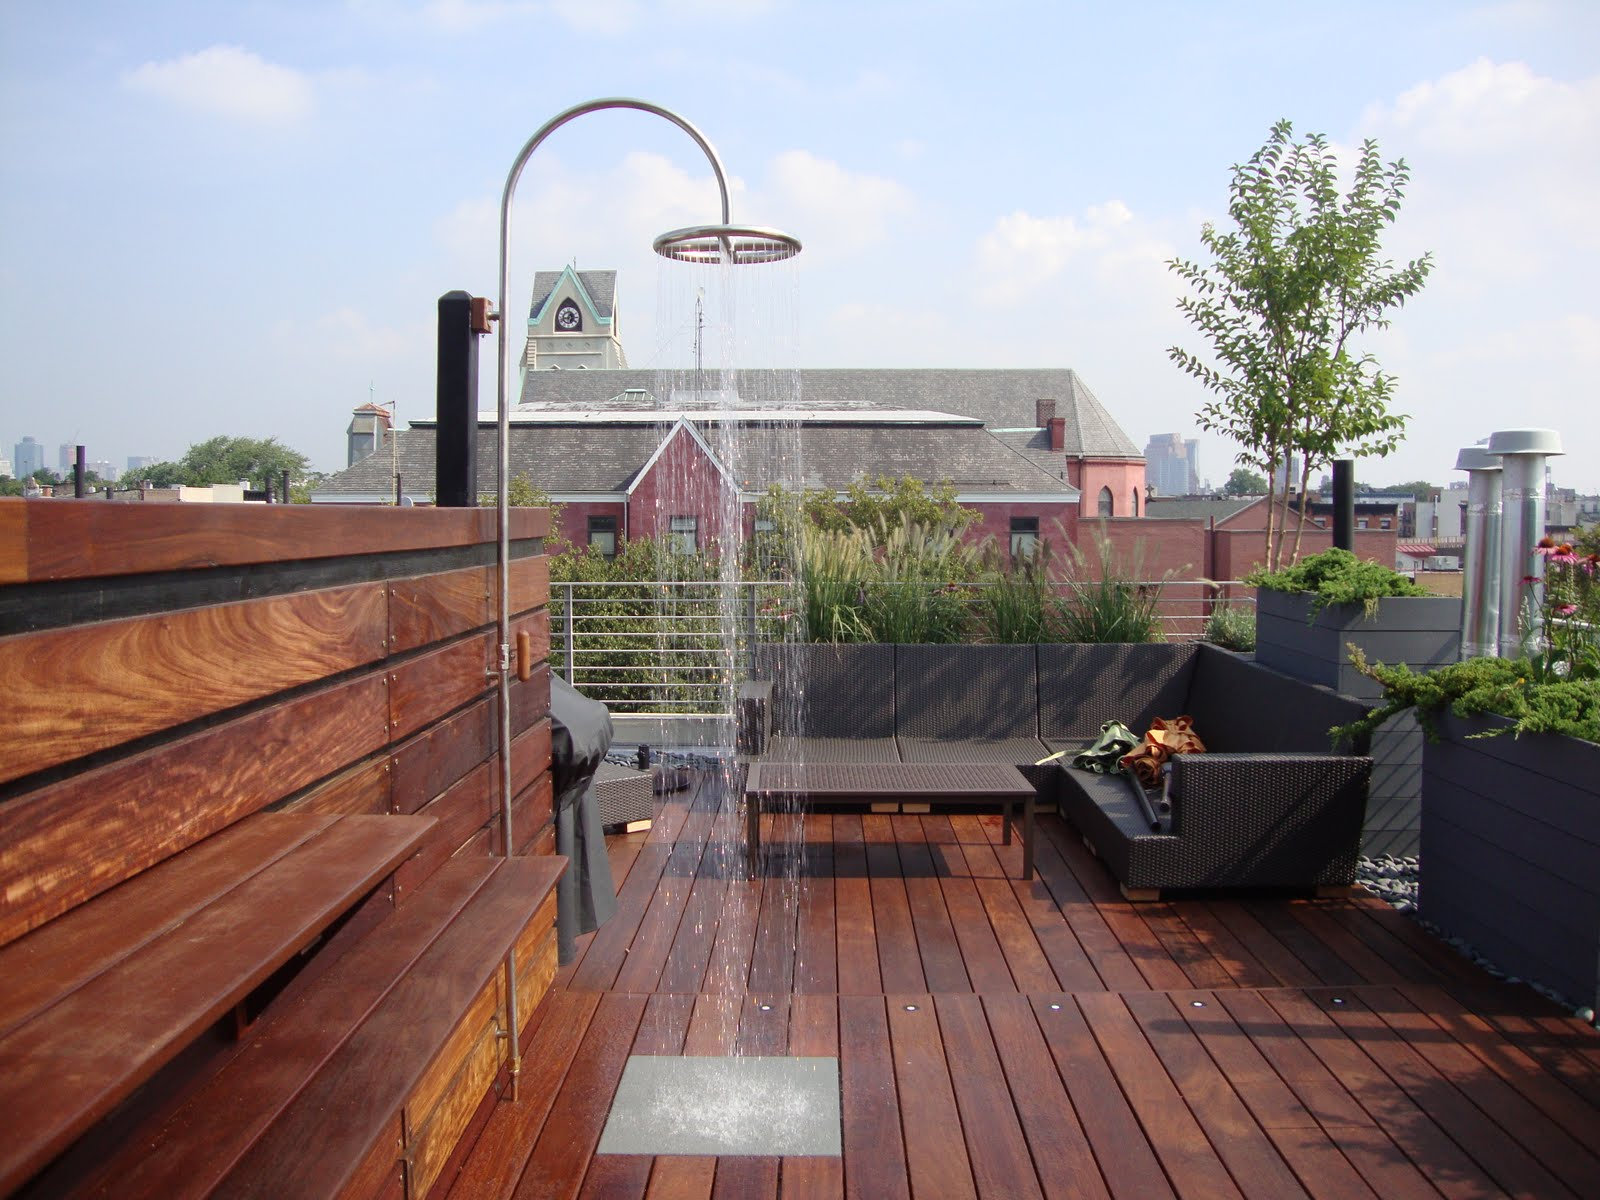 Ipe decking and rooftop shower at hot tub